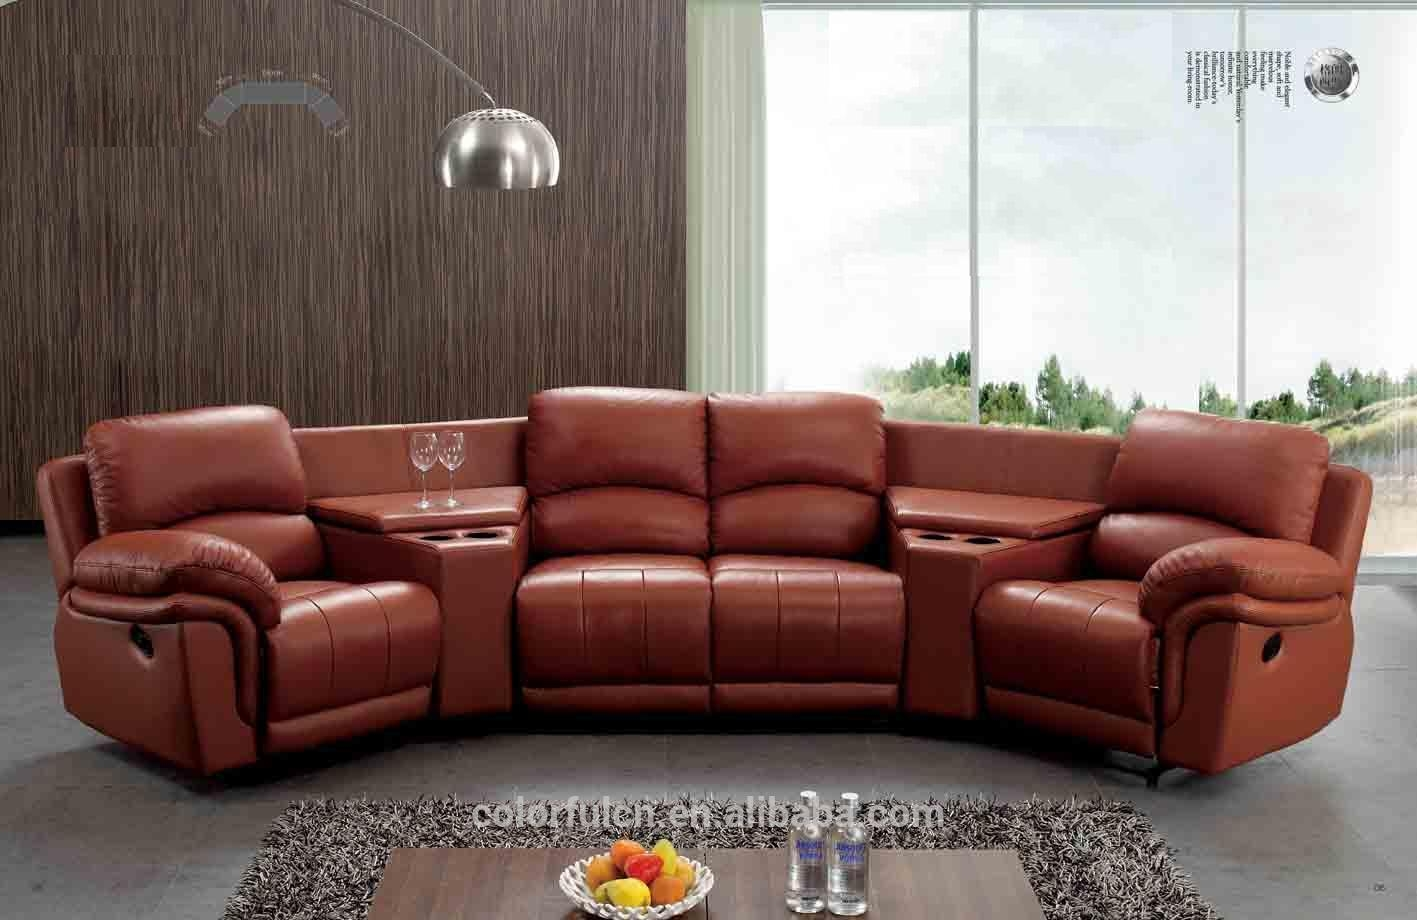 20 top semi sofas sofa ideas for Semi classic sofa